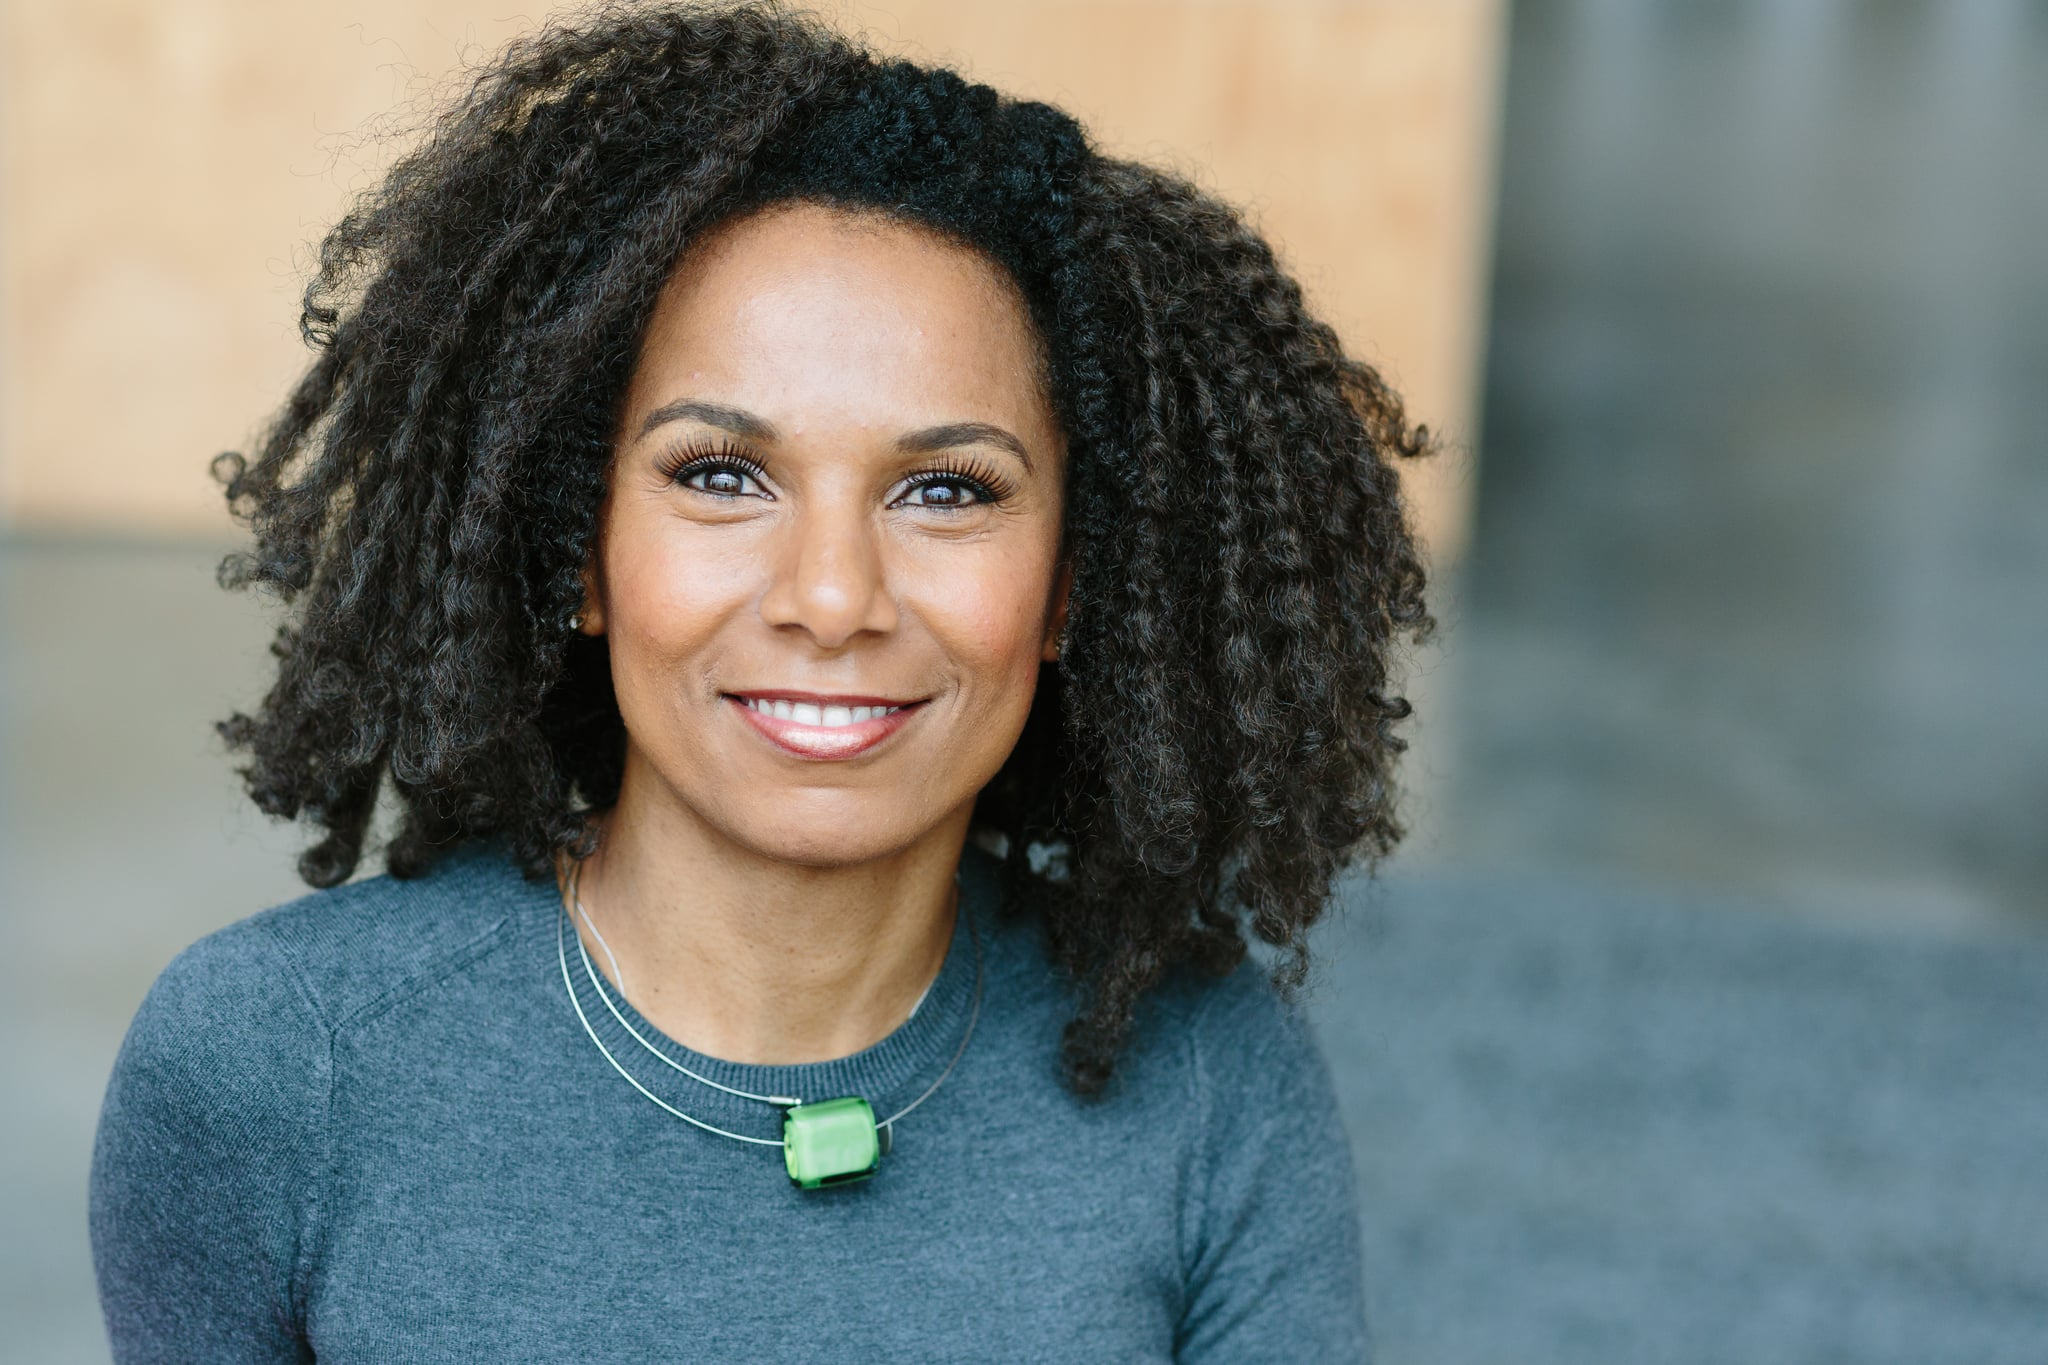 Maxine Williams, Facebook's Chief Diversity Officer